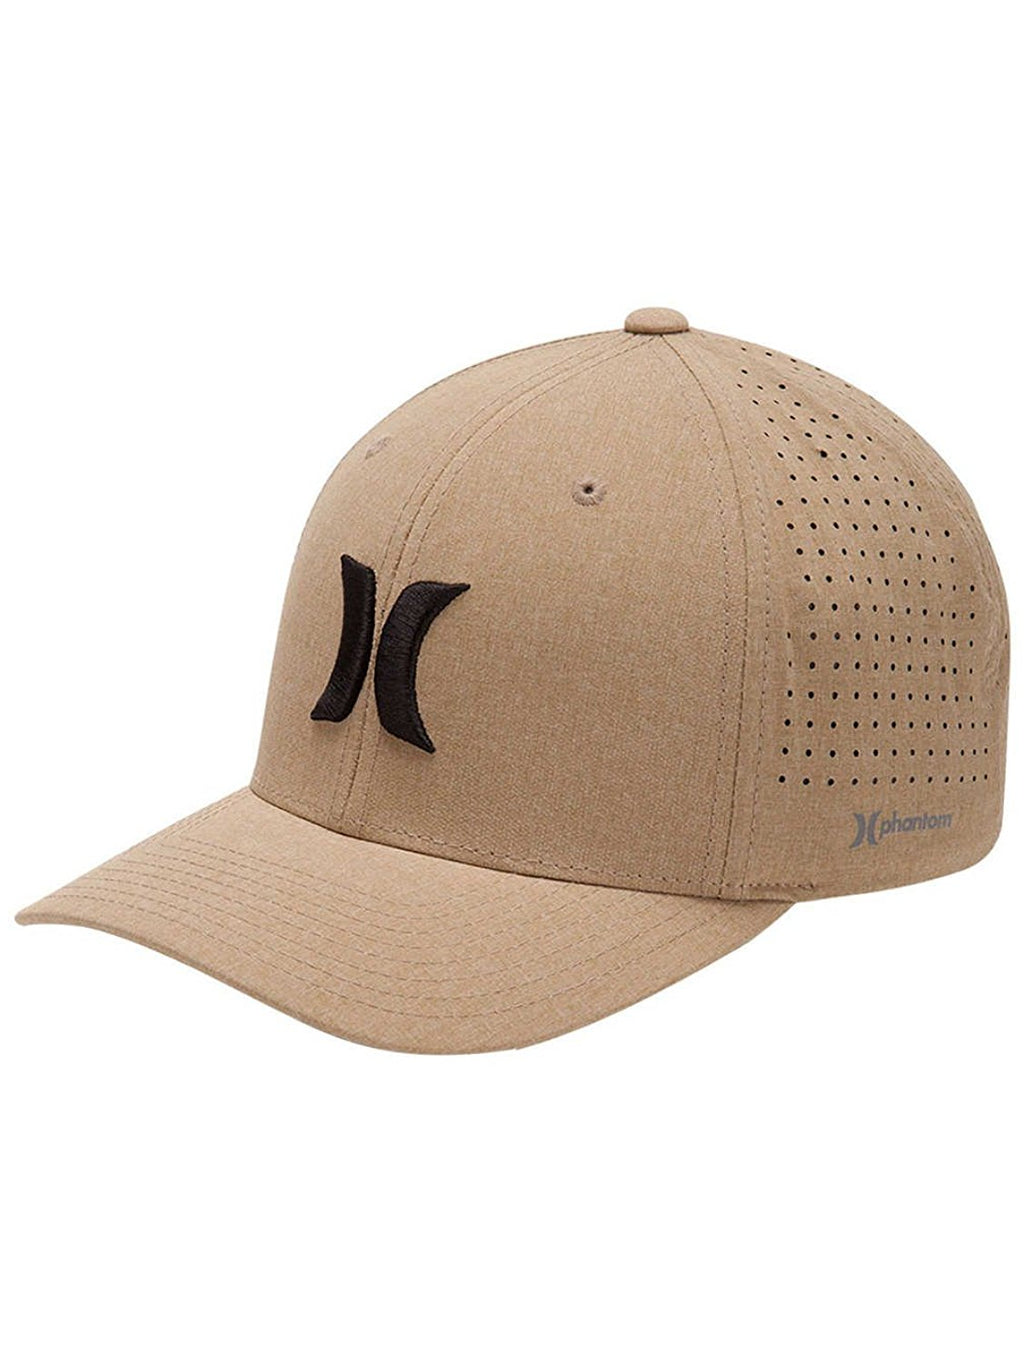 Hurley Mens Phantom 4 0 Cap